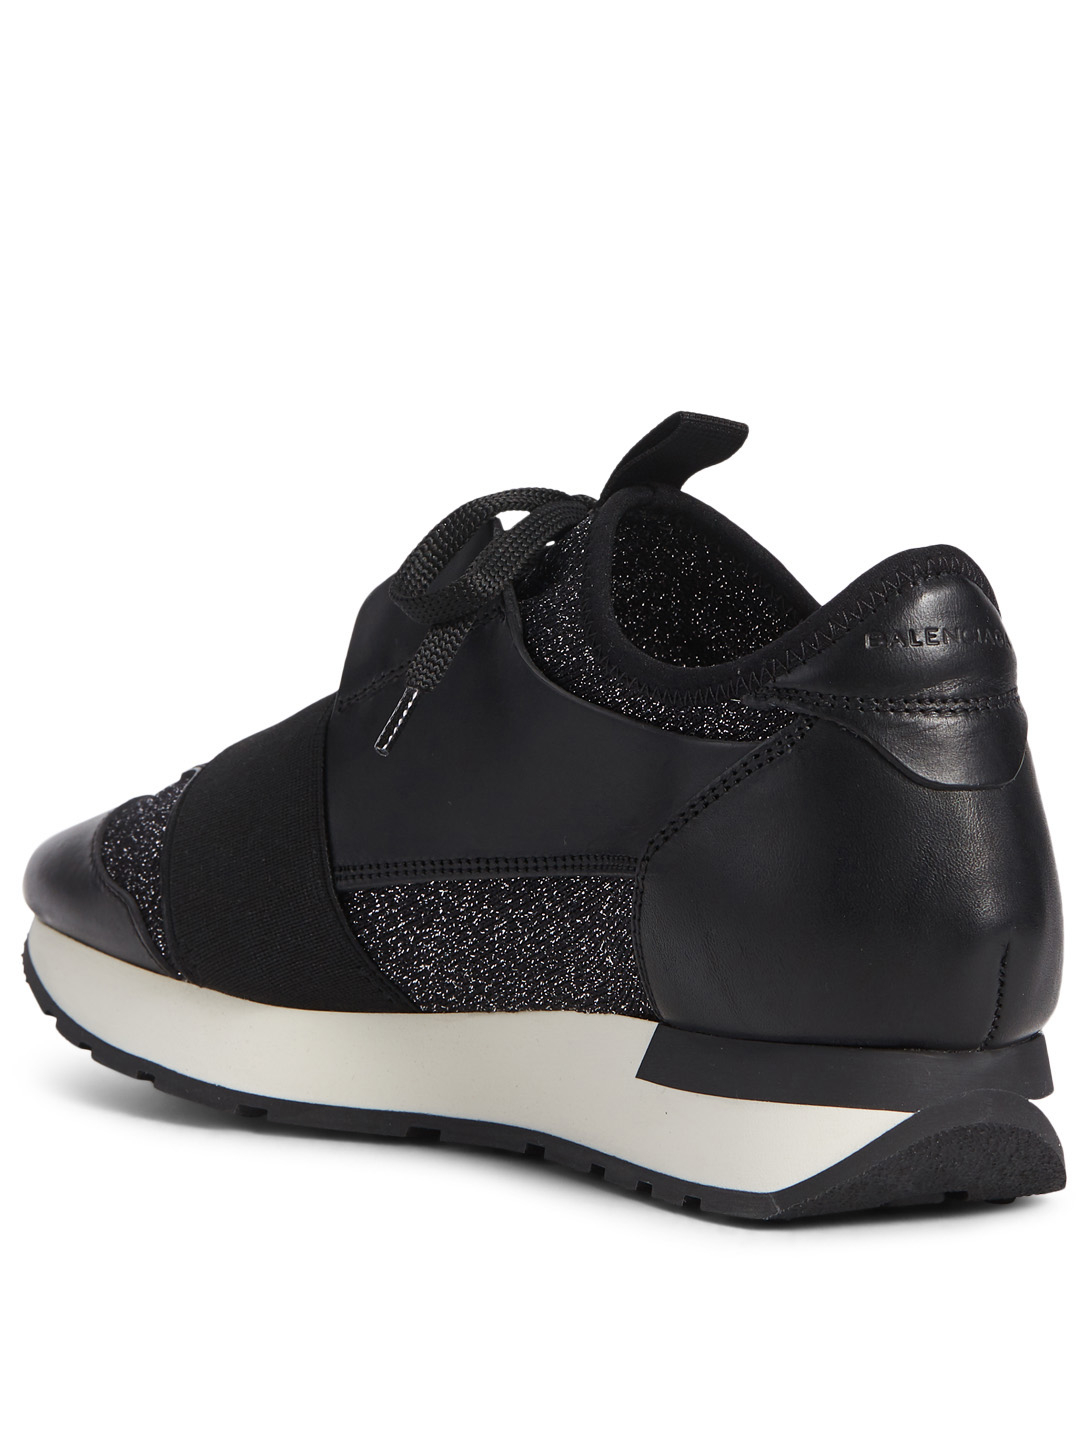 BALENCIAGA Racer Sneakers Womens Black